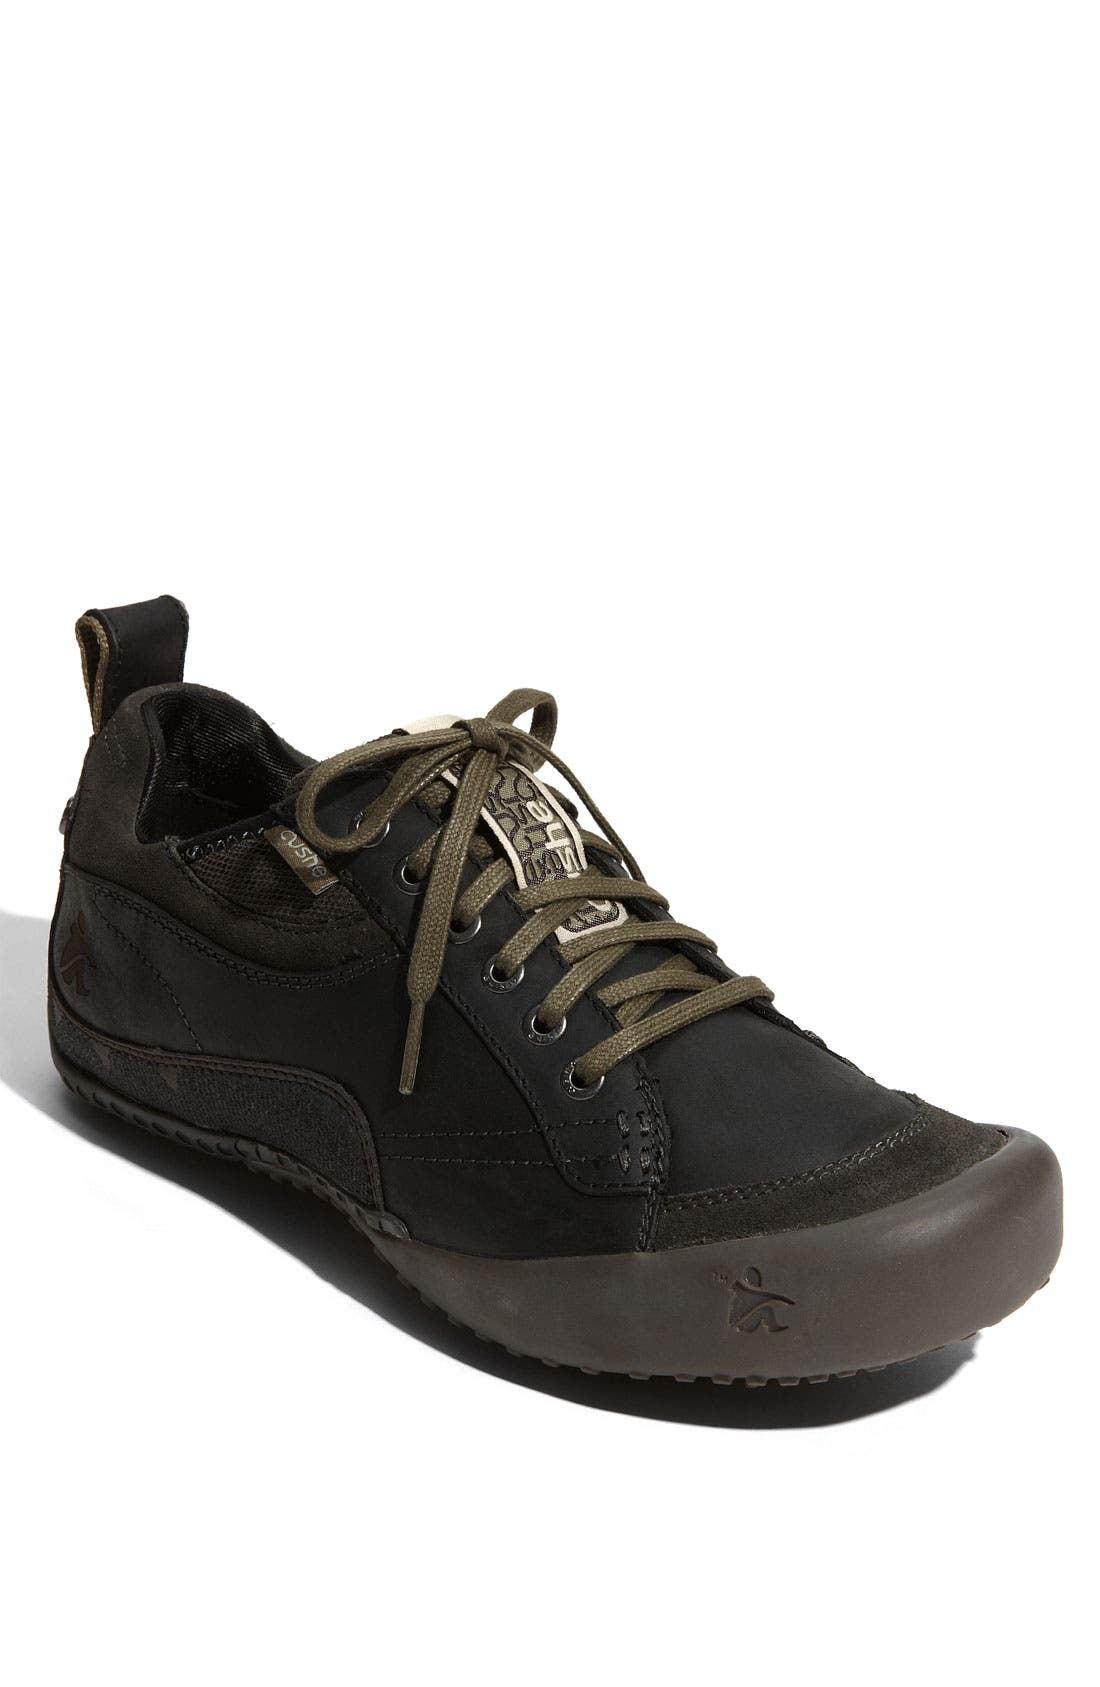 Alternate Image 1 Selected - Cushe 'Frequent Flyer' Sneaker